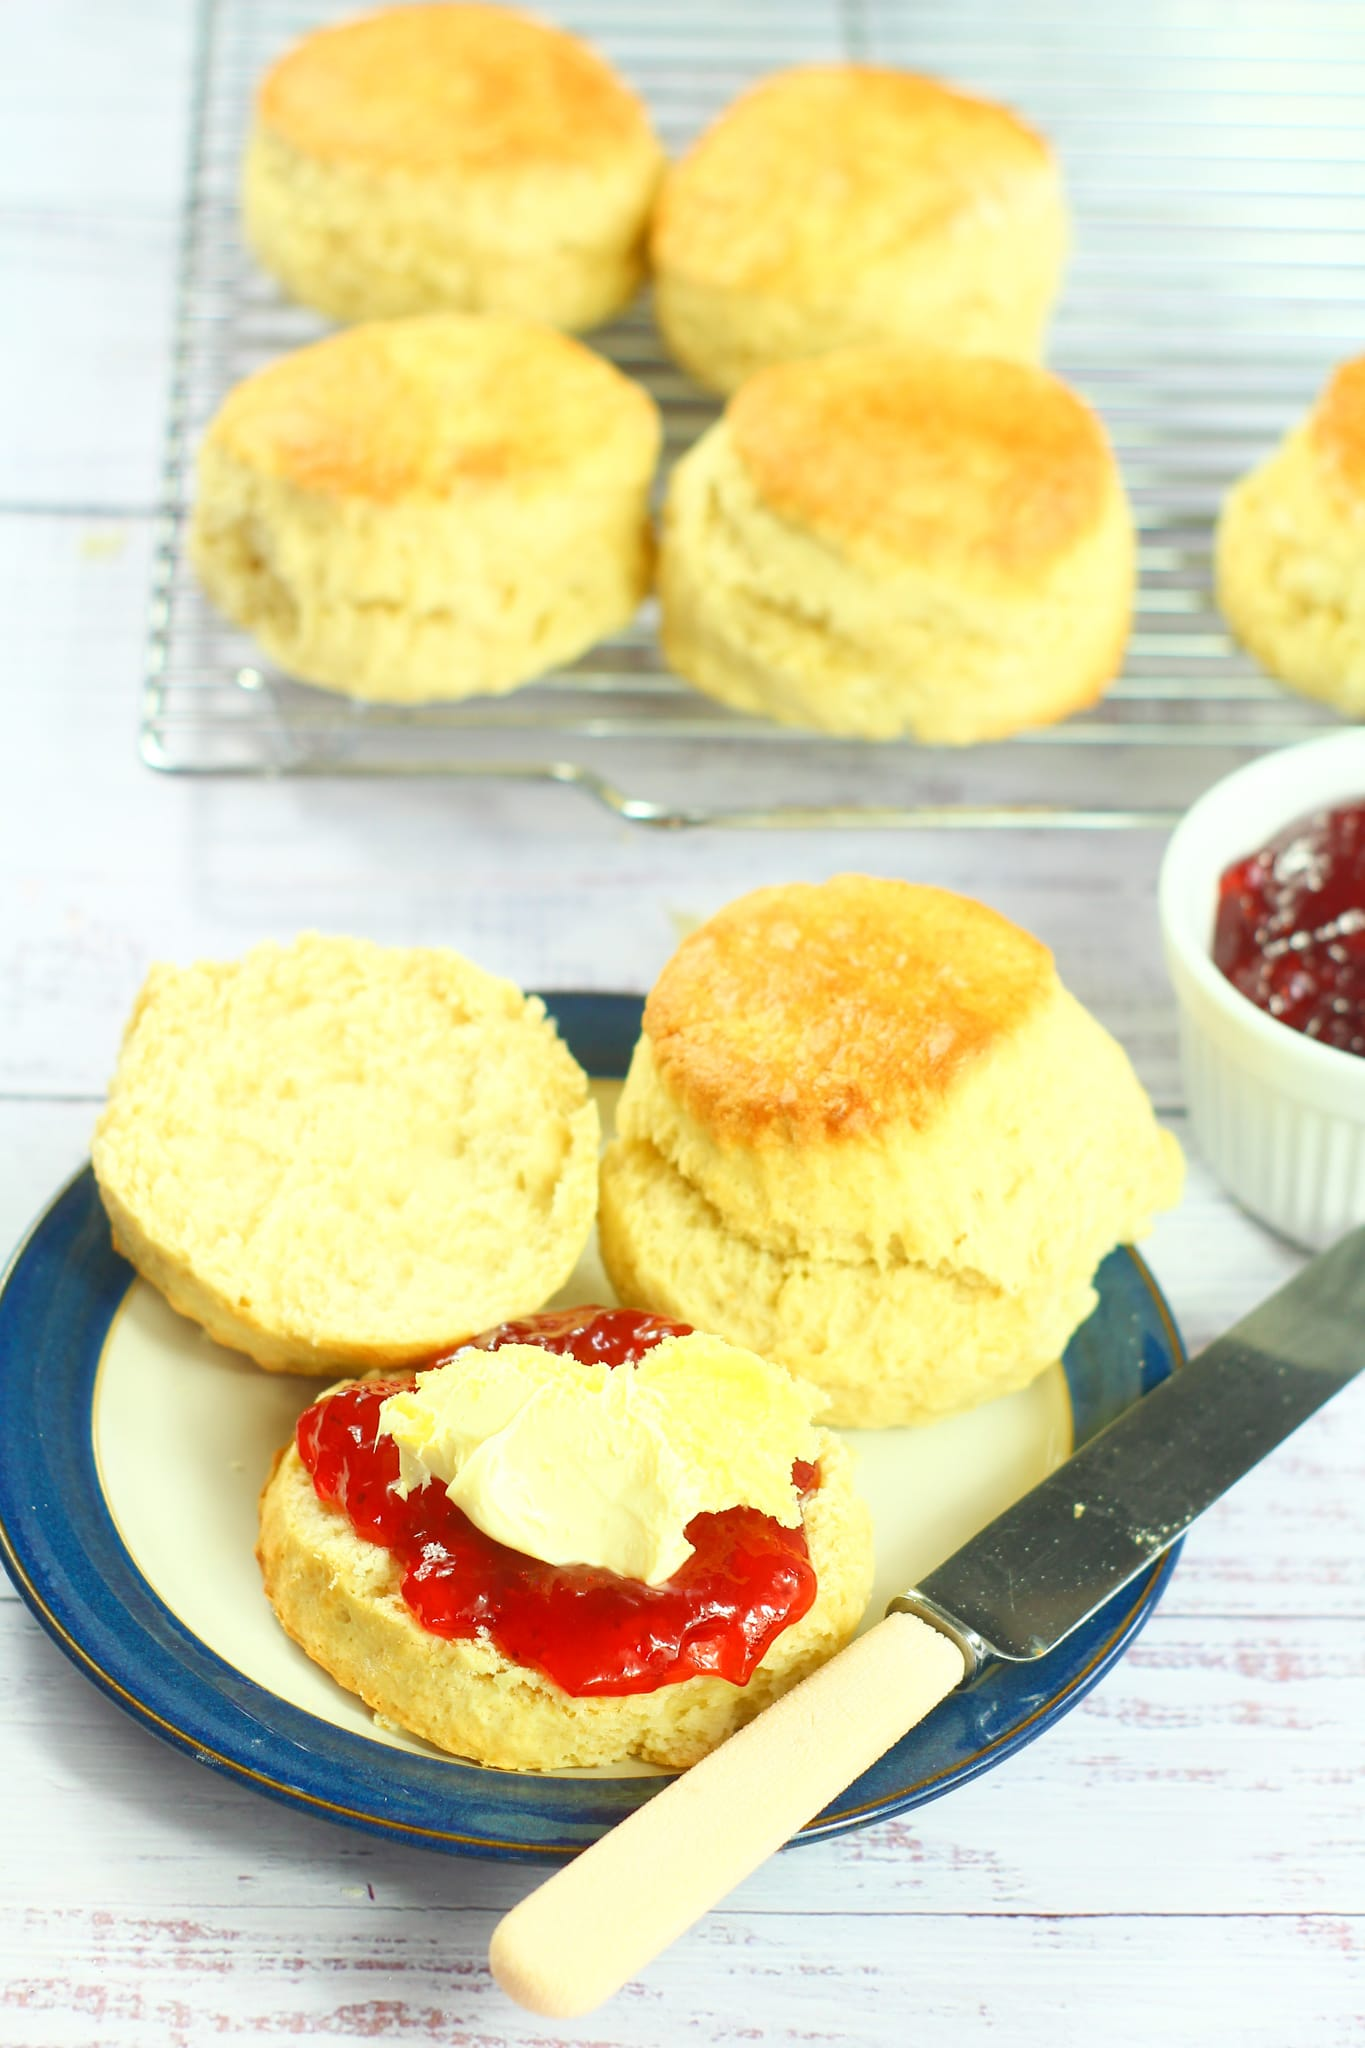 split scone with jam and cream on a small plate with another scone and more scones in the background with a pot of jam on the right